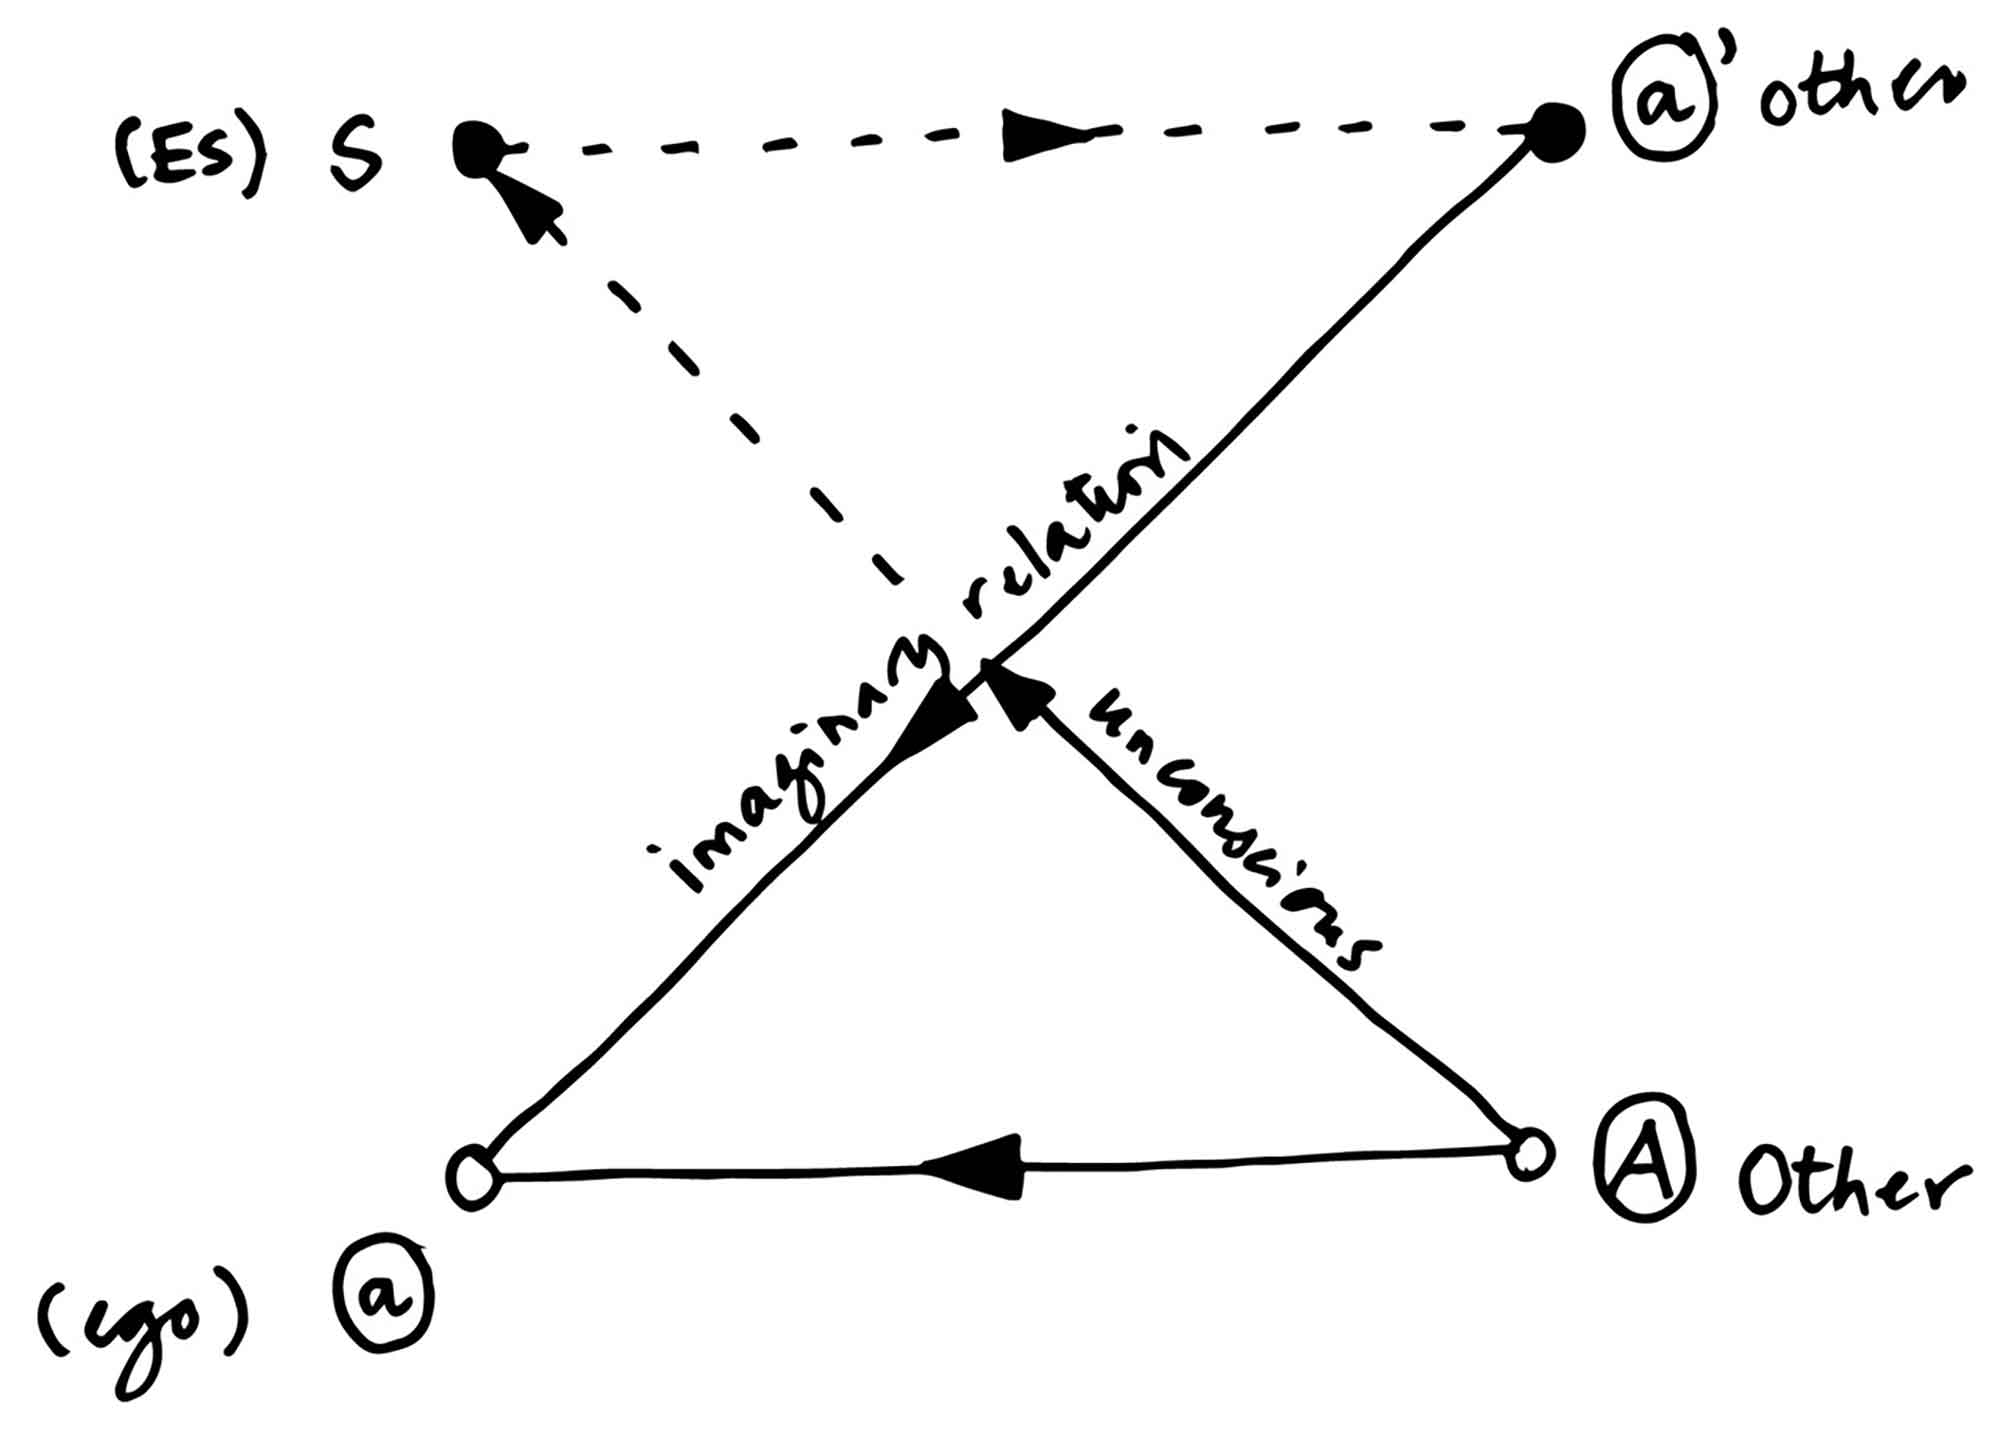 Jacques Lacan's Schema L. Adapted from Jacques Lacan, Seminar II: The Ego in Freud's Theory and in the Technique of Psychoanalysis, 1954– 1955 (Le séminaire, livre II: Le moi dans la théorie de Freud et dans la technique de la psychanalyse 1954–1955 [1978]), ed. by Jacques-Alain Miller, tr. by Sylvana Tomaselli, London: W. W. Norton, 1991, p. 109.